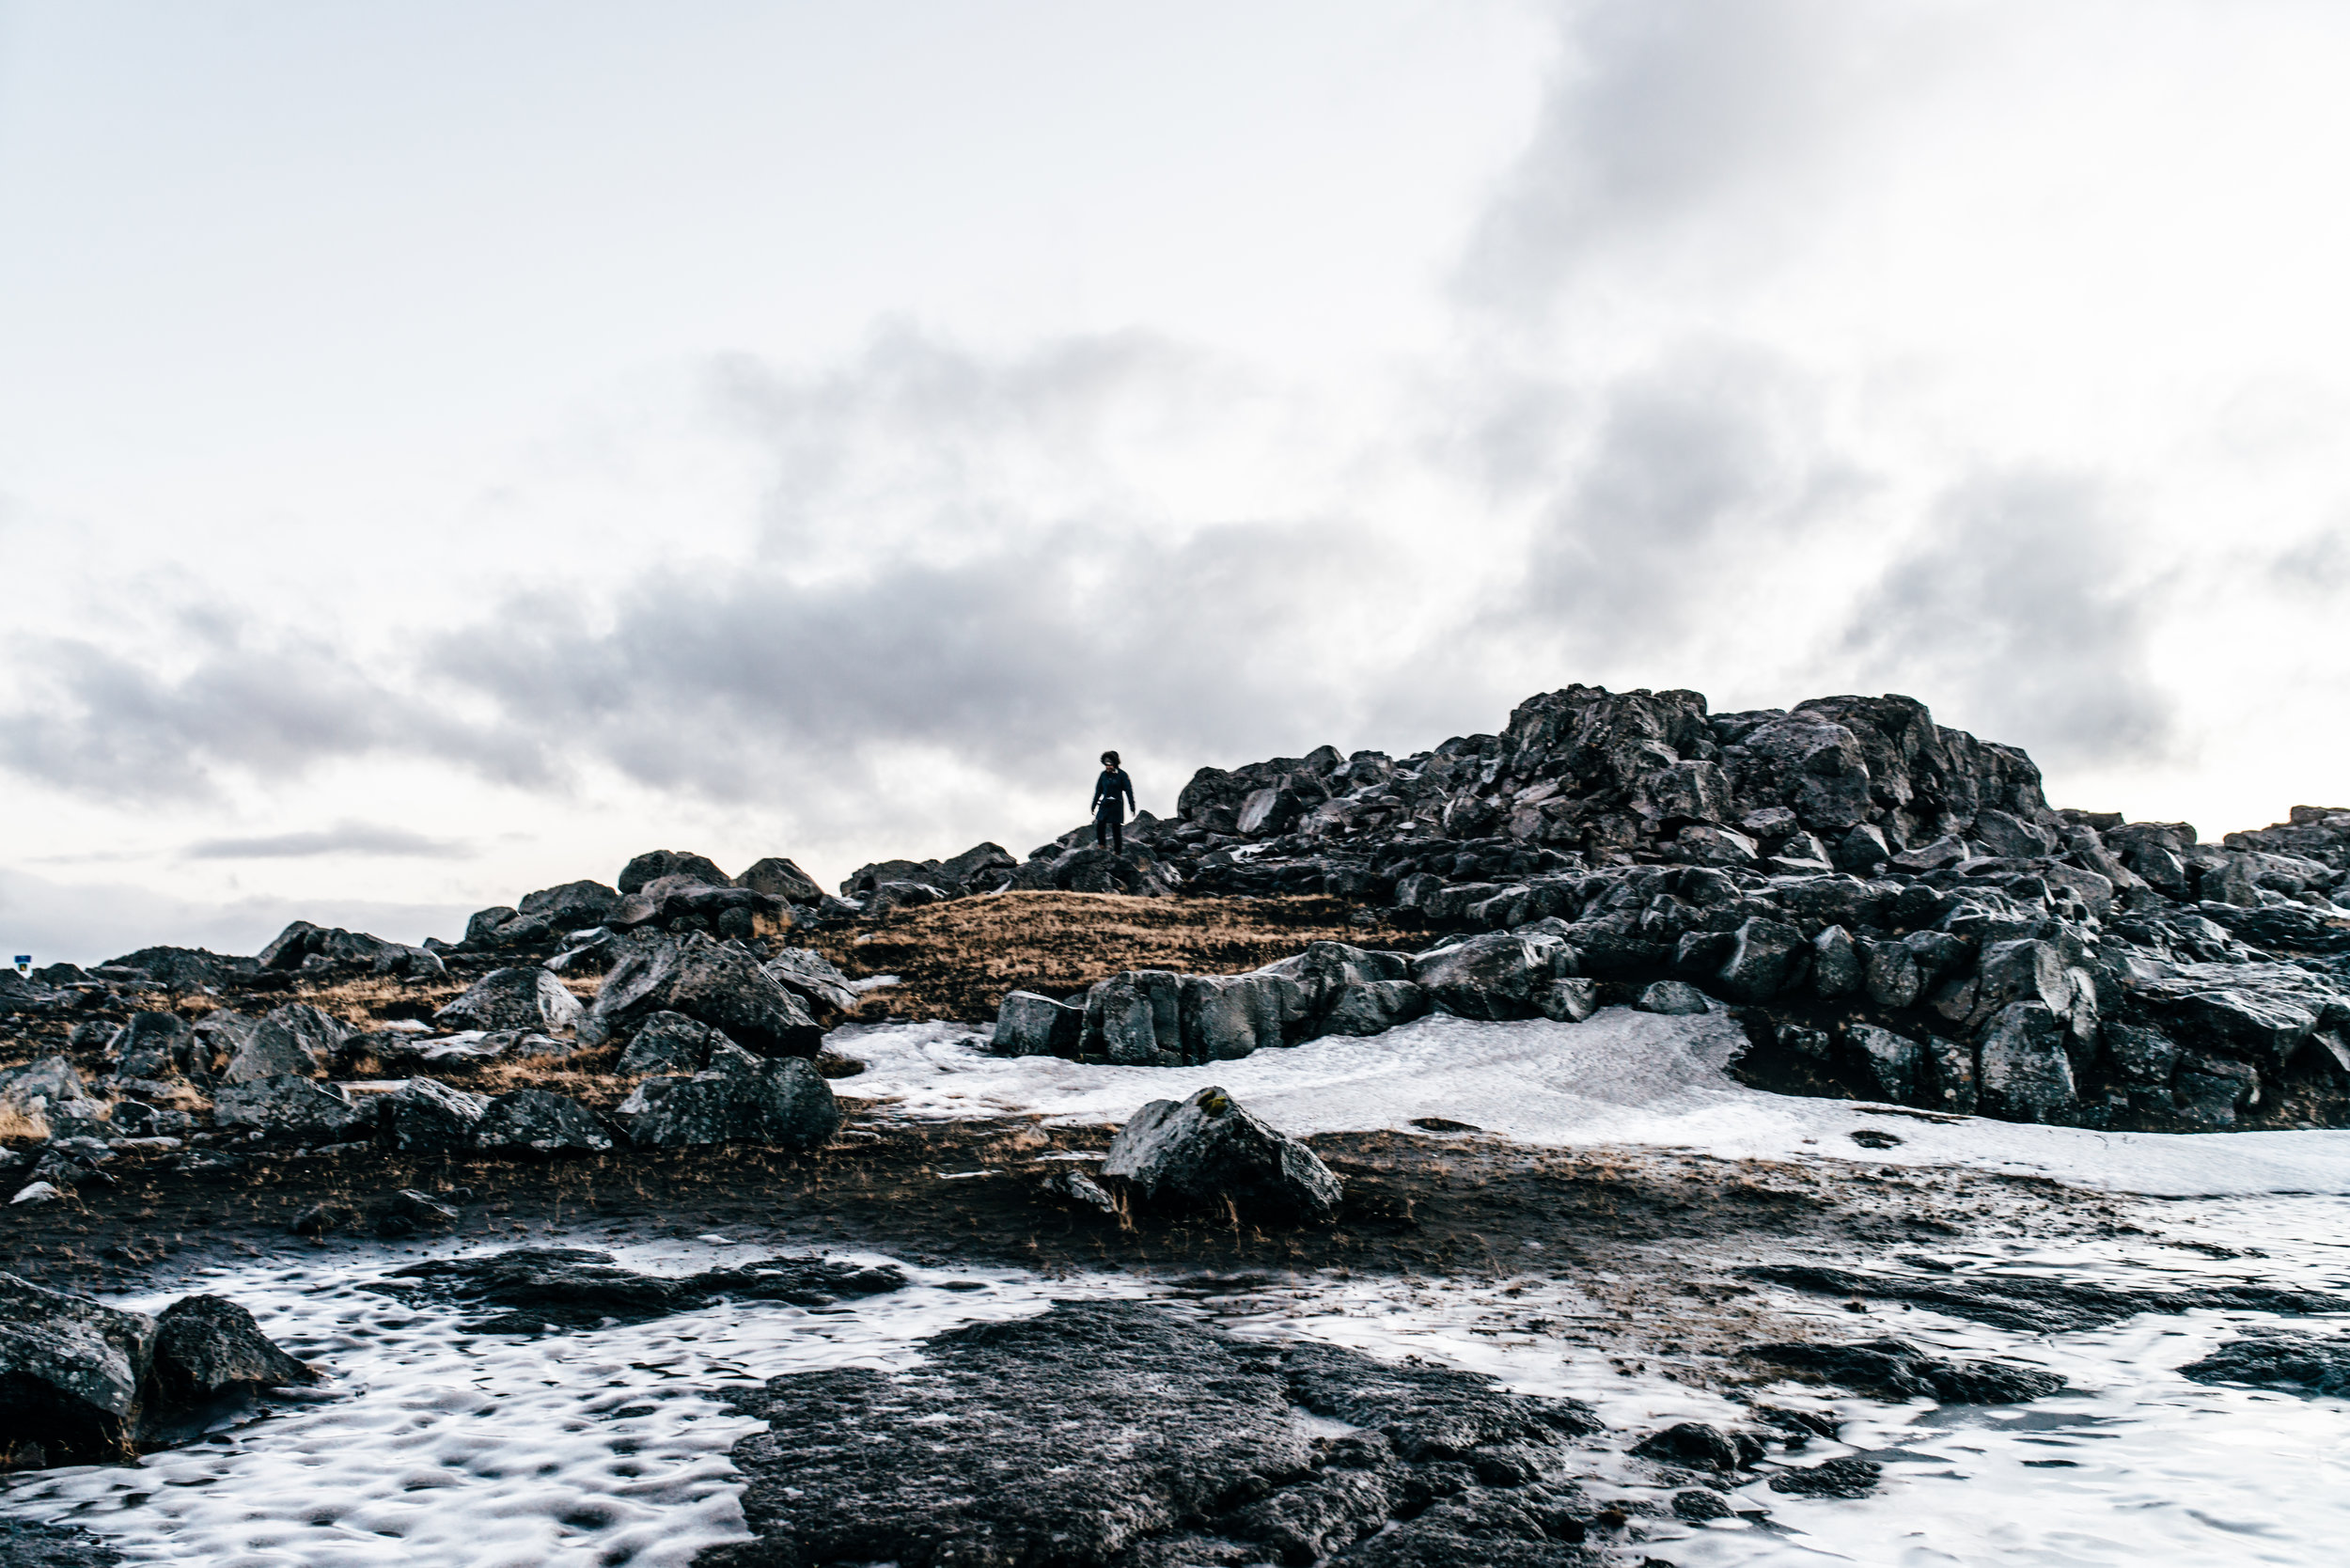 The hike to Dettifoss wasn't long... except it was completely frozen! We had to do some hard core rock climbing and detouring to find our way there.